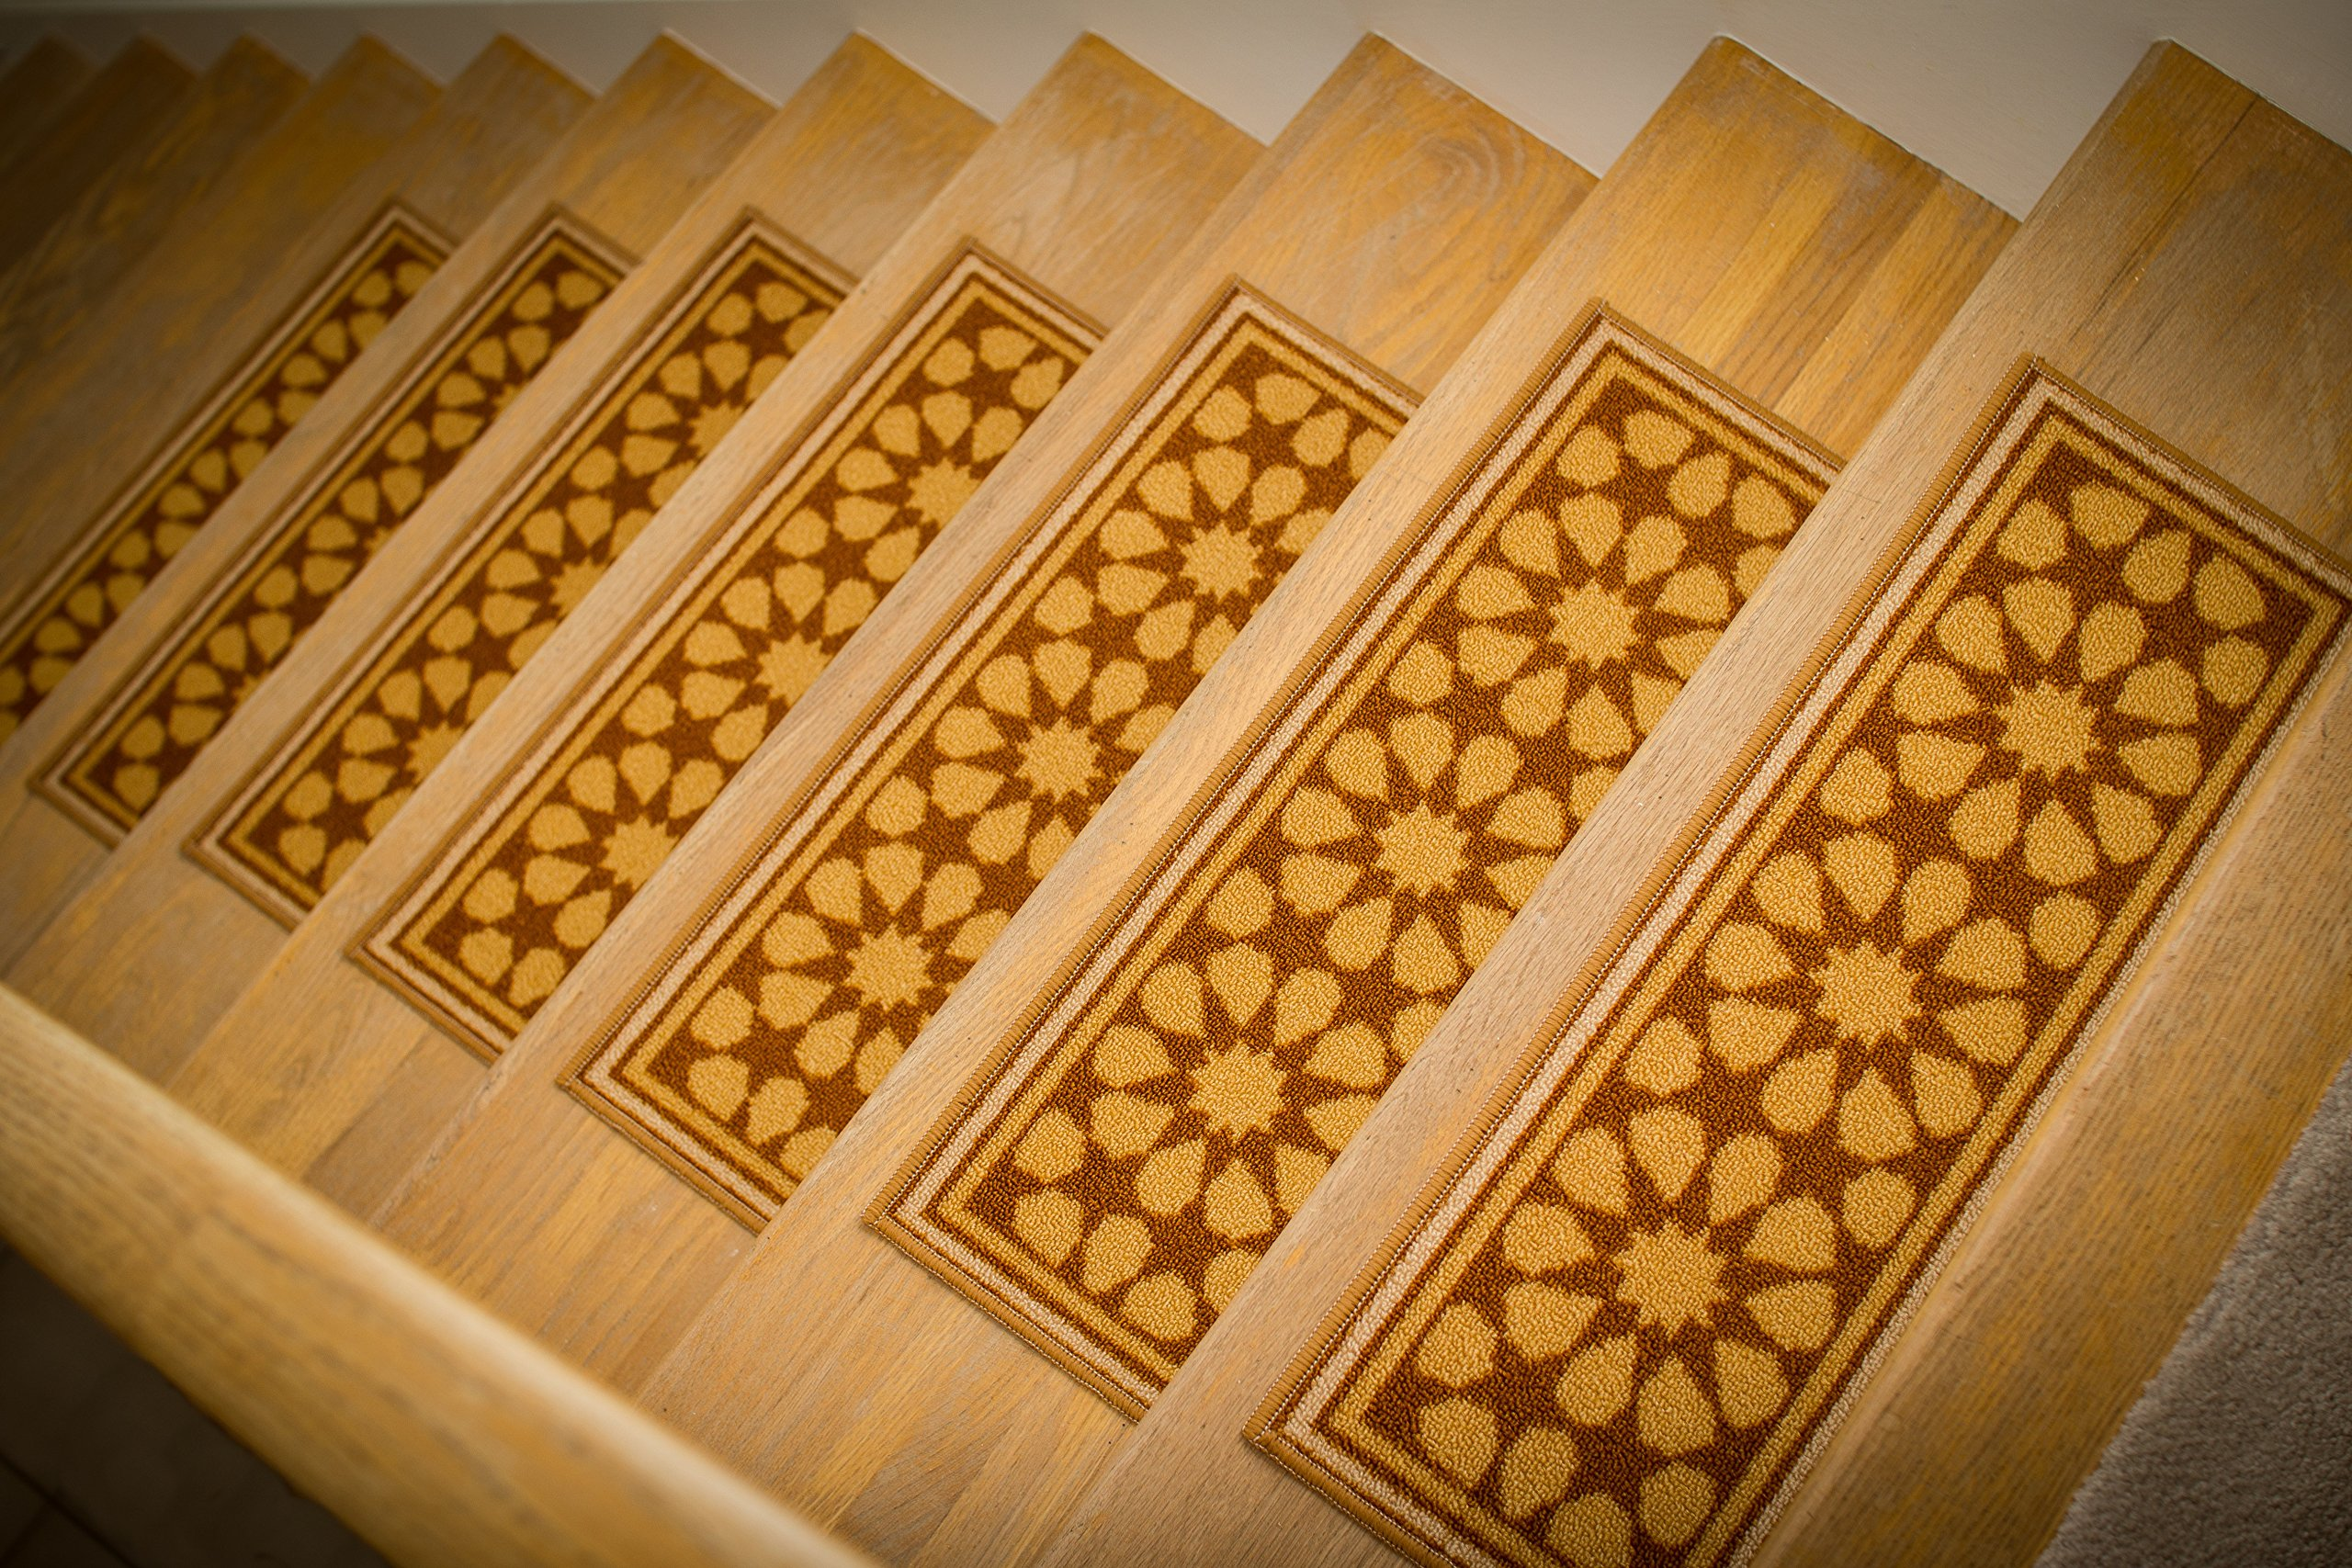 """Gloria Rug Skid-Resistant Indoor/Outdoor Rubber Backing Gripper Non-Slip Carpet Stair Treads-Machine Washable Stair Mat Area Rug (SET OF 7), 8.5"""" x 26"""", Gold"""